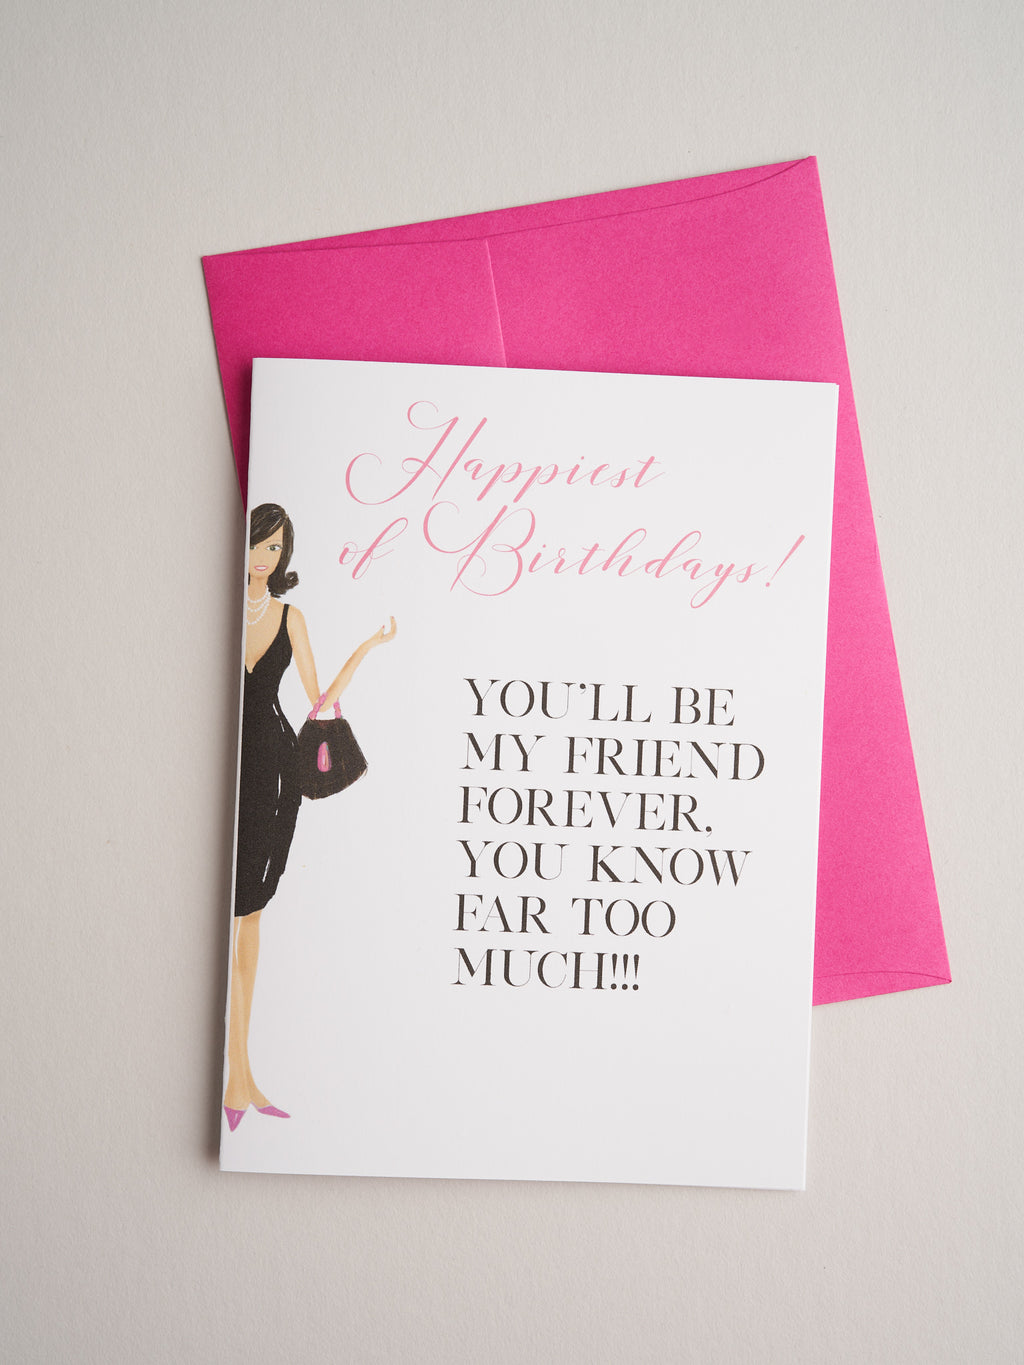 BD-19-25 | Friend Forever - Greeting Cards - Queen & Grace